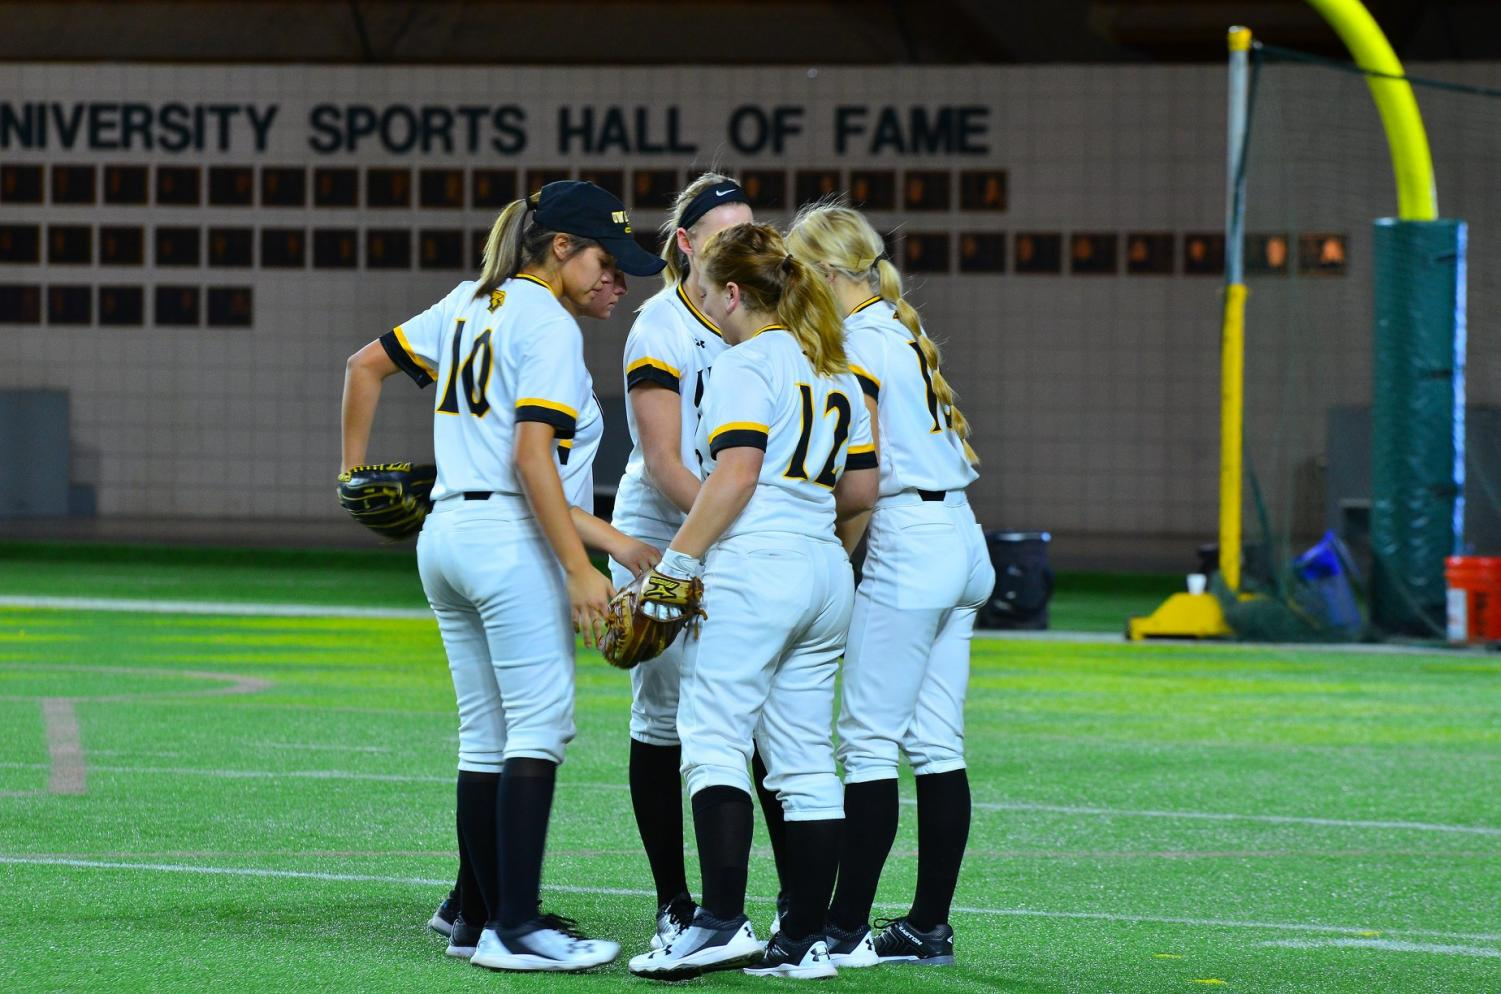 Five UW Oshkosh Titan softball players meet on the field during a pause in the action over the opening weekend in Michigan.